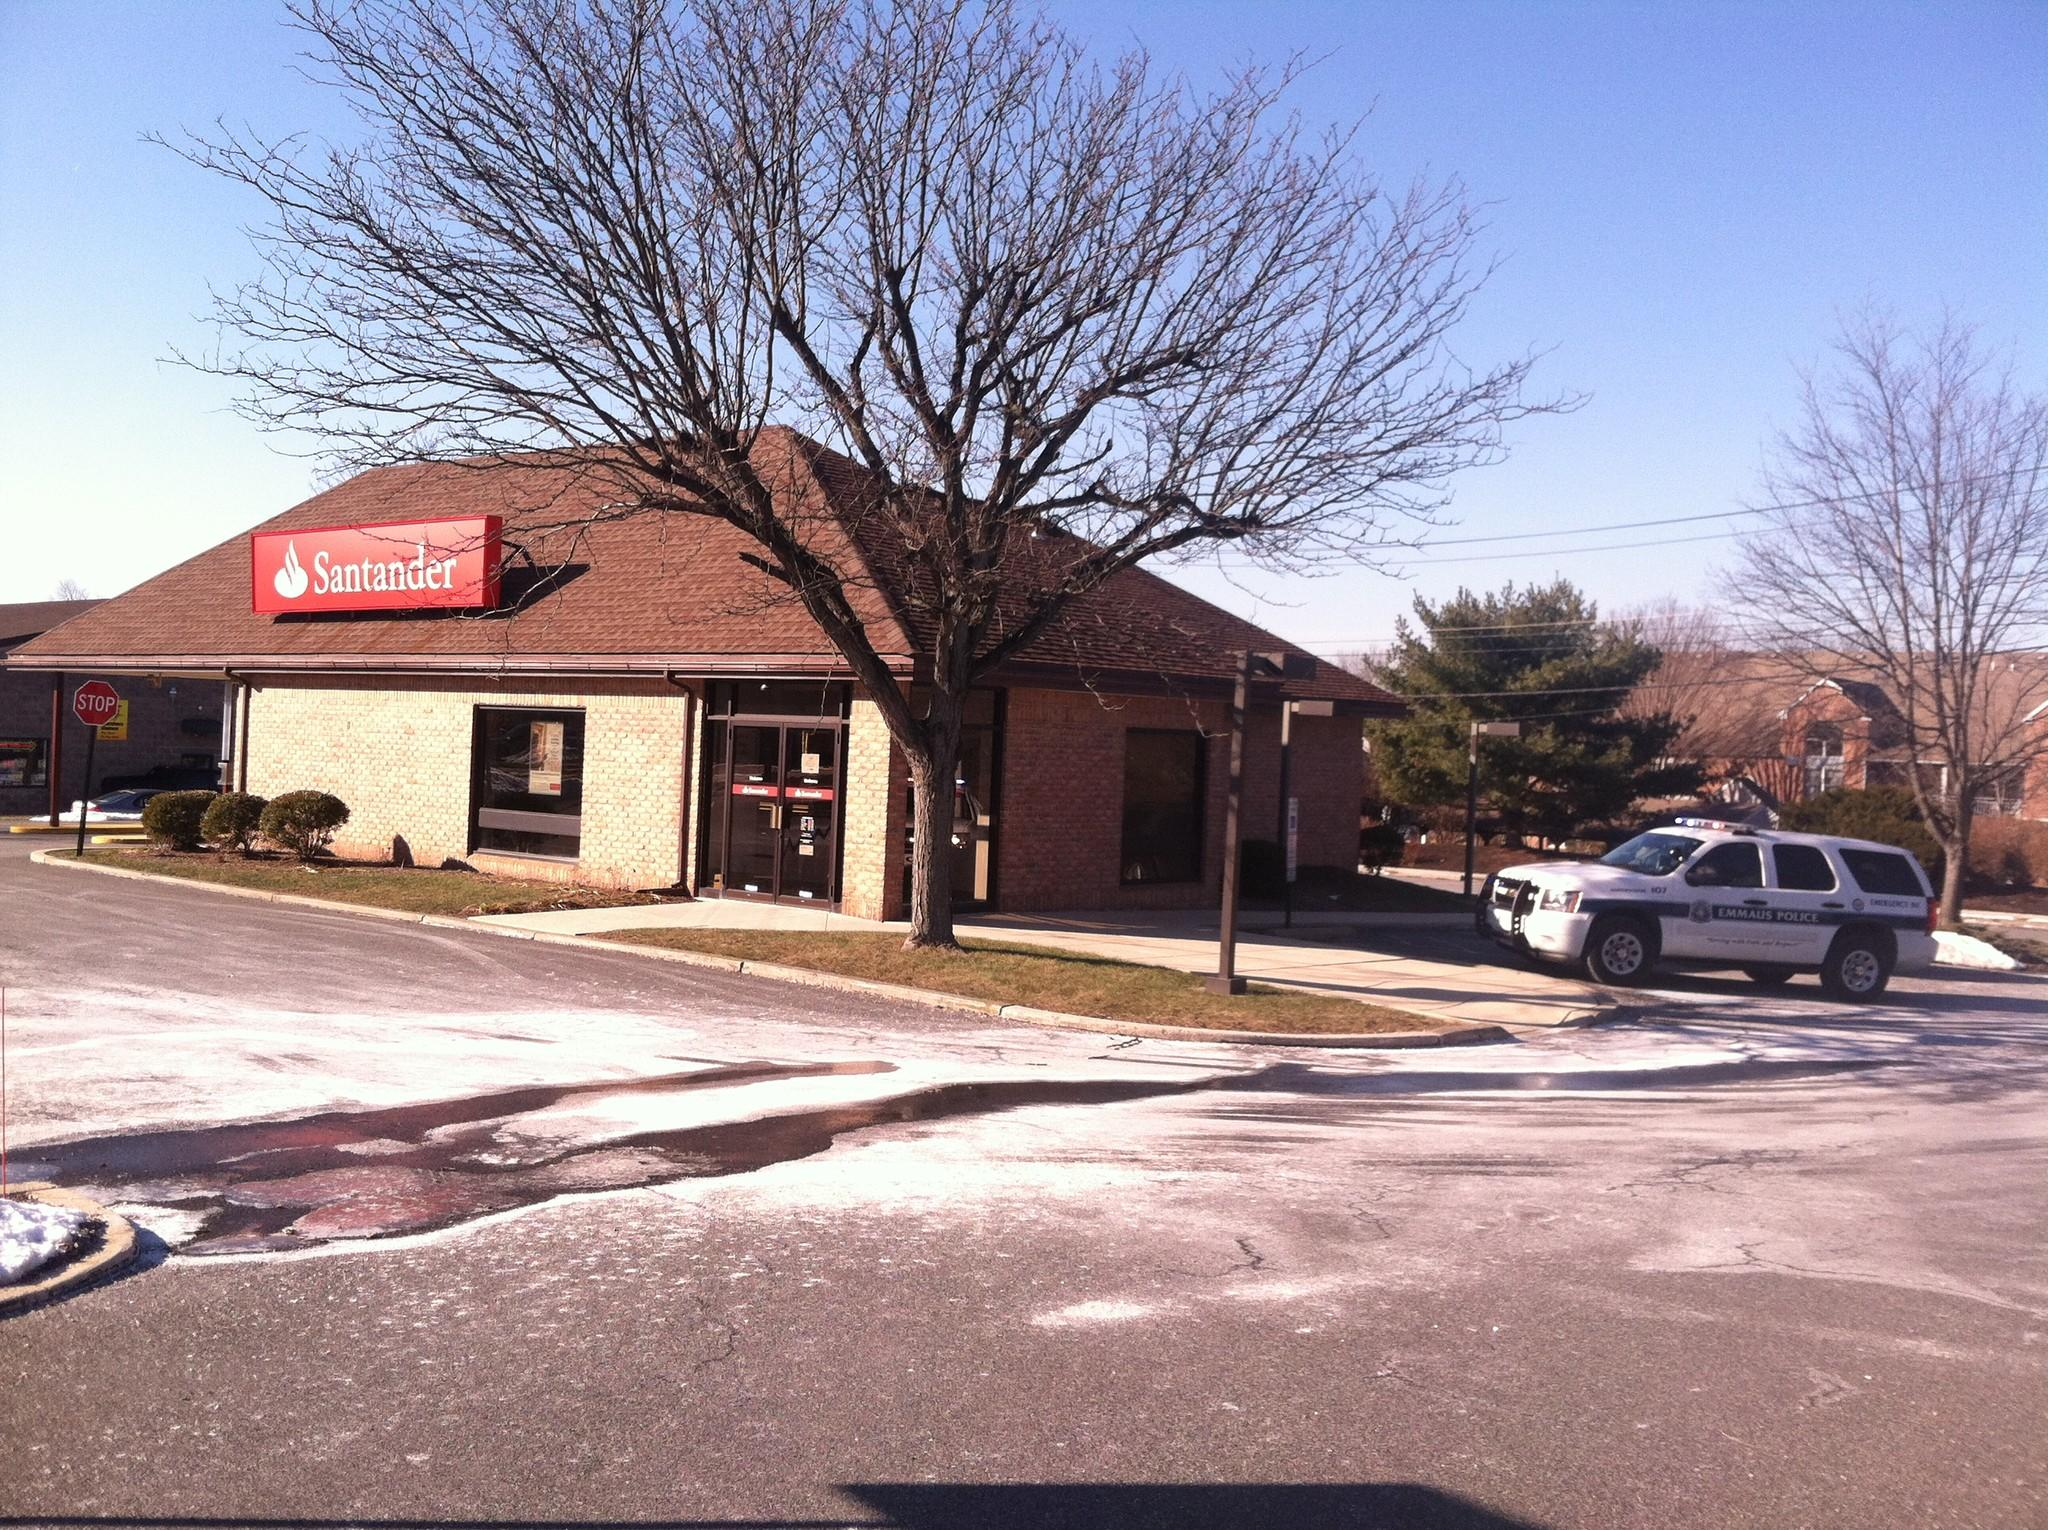 Police are investigating a bank robbery at the Santander branch at Chestnut Street and Cedar Crest Boulevard in Emmaus on Thursday.